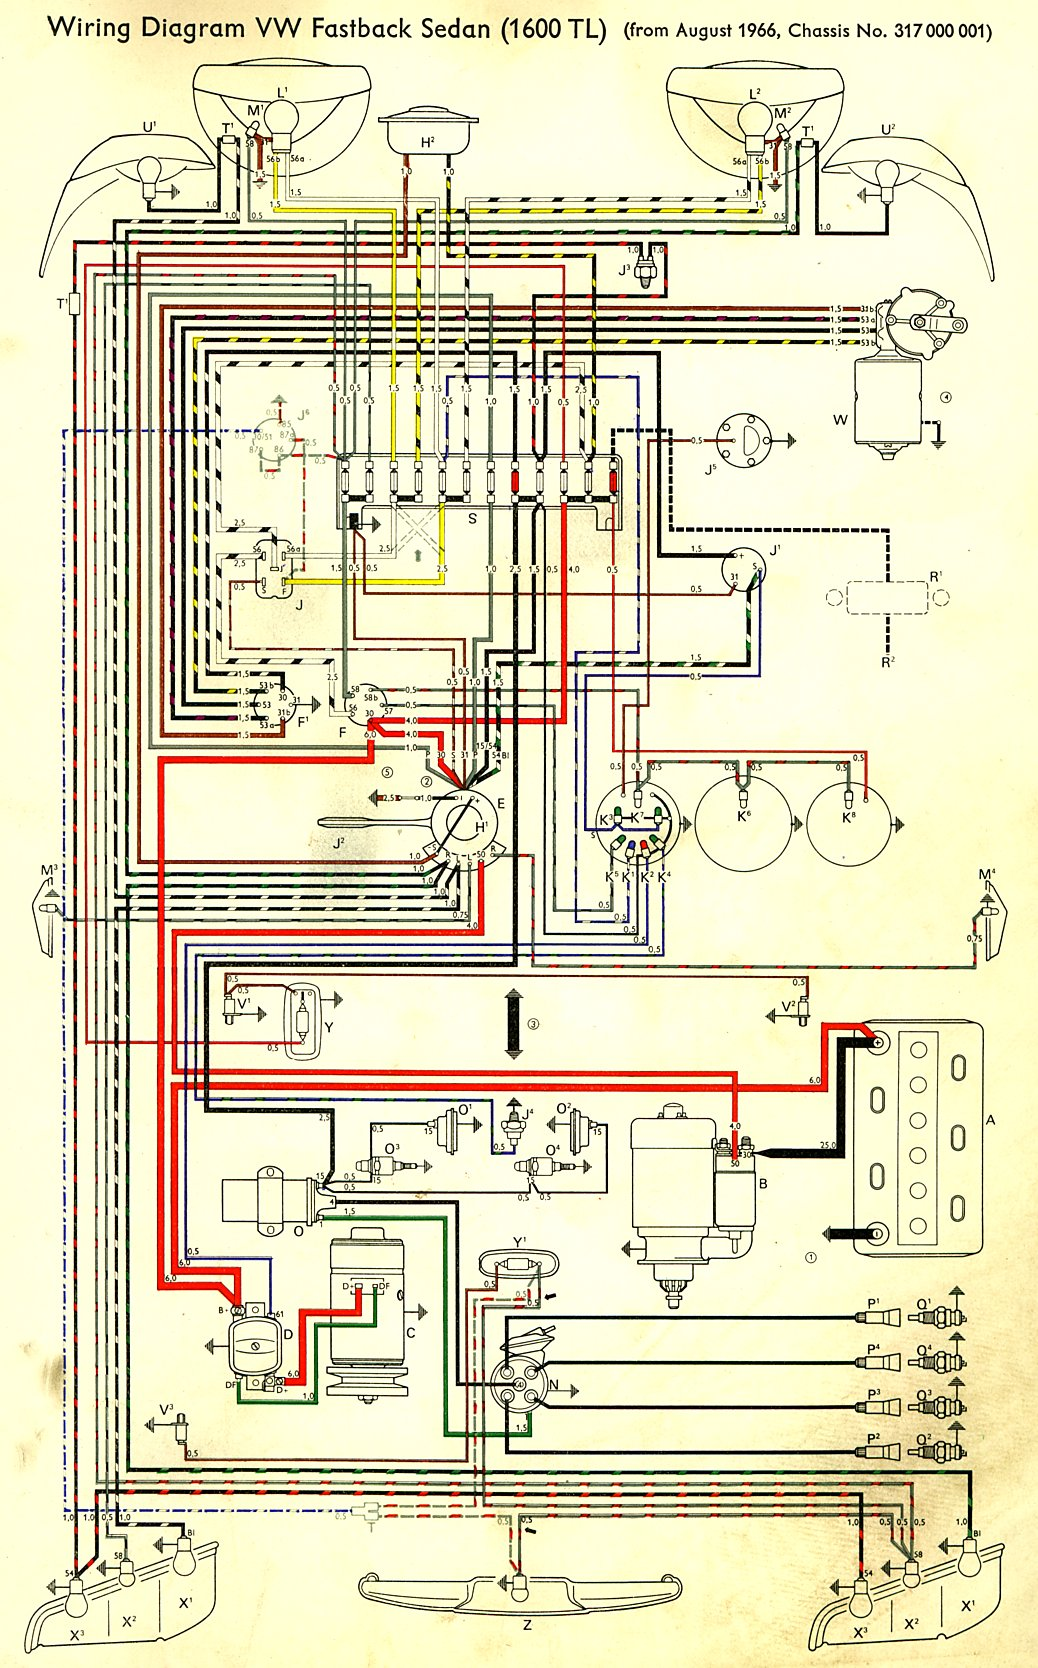 type3_1600TL_67 thesamba com type 3 wiring diagrams vw golf 3 electrical wiring diagram at webbmarketing.co